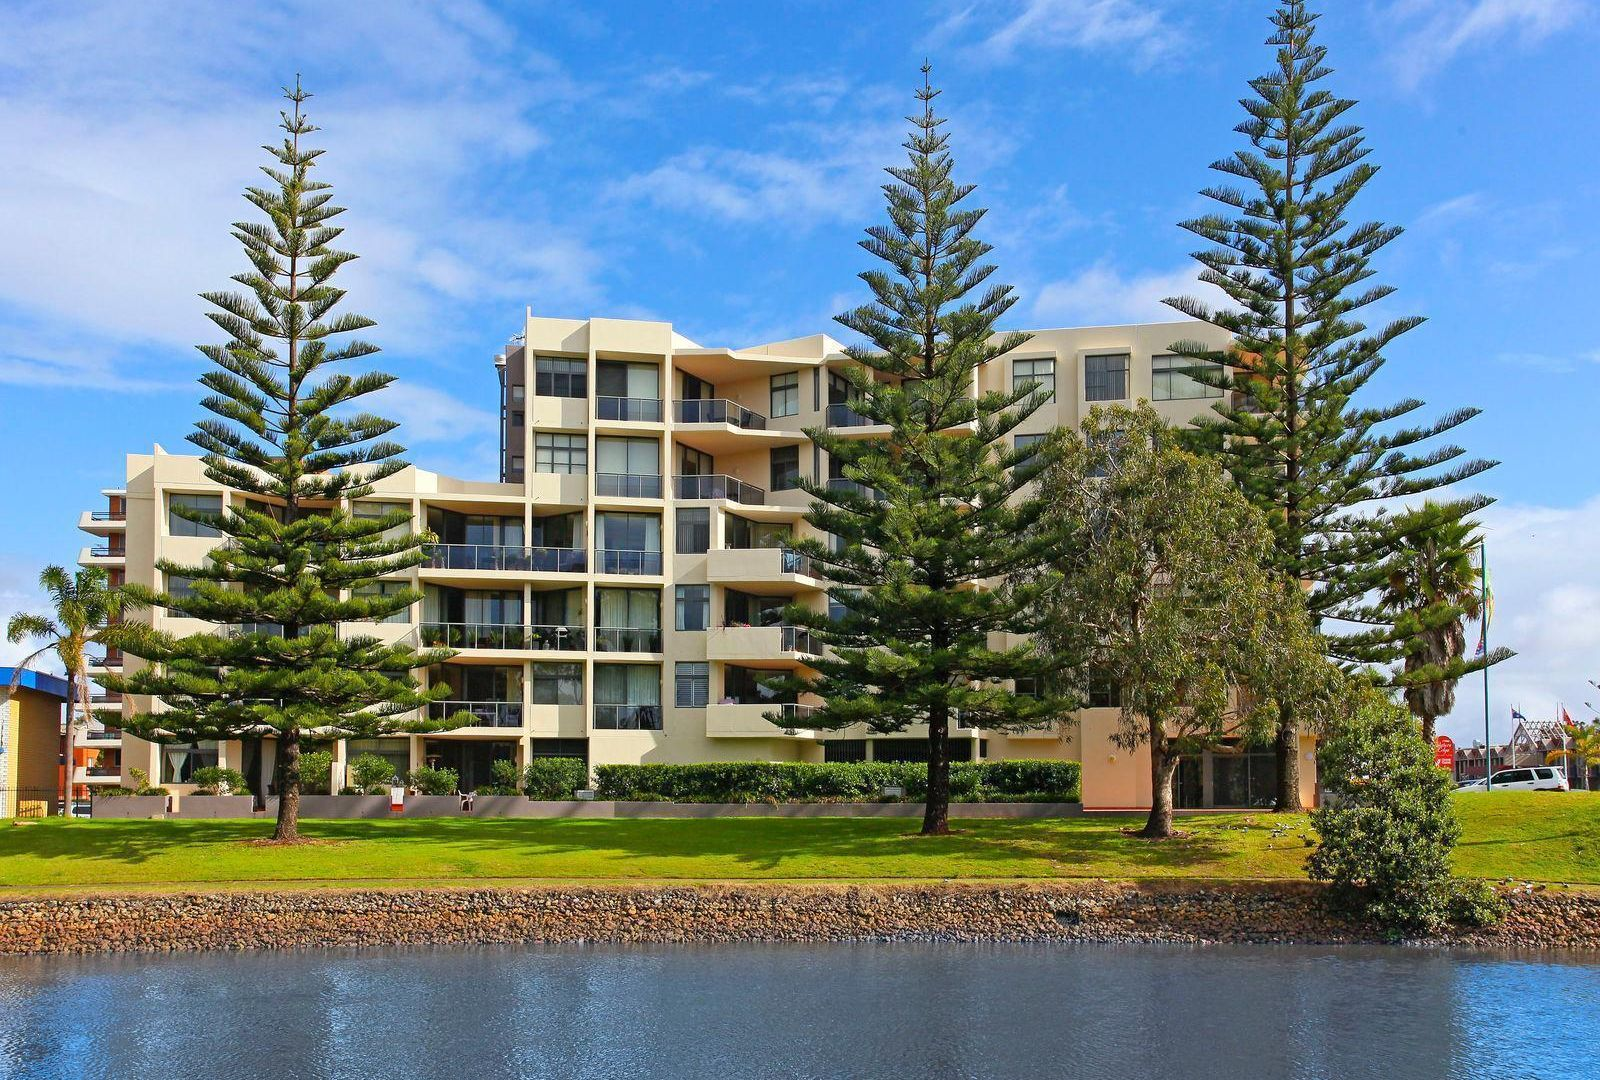 304/2 Hollingworth Street, Port Macquarie NSW 2444, Image 1